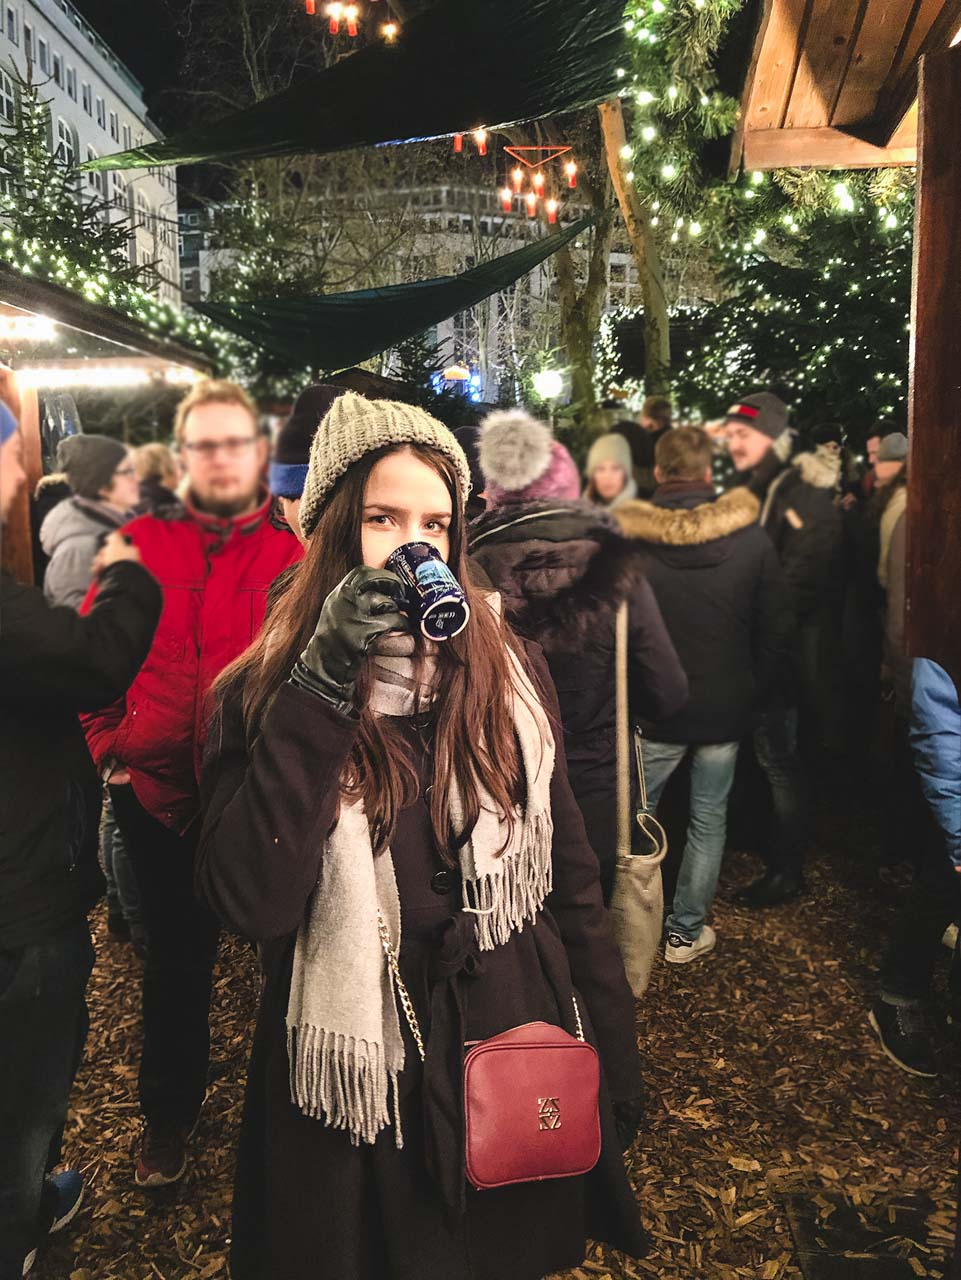 A girl holding a mug of mulled wine